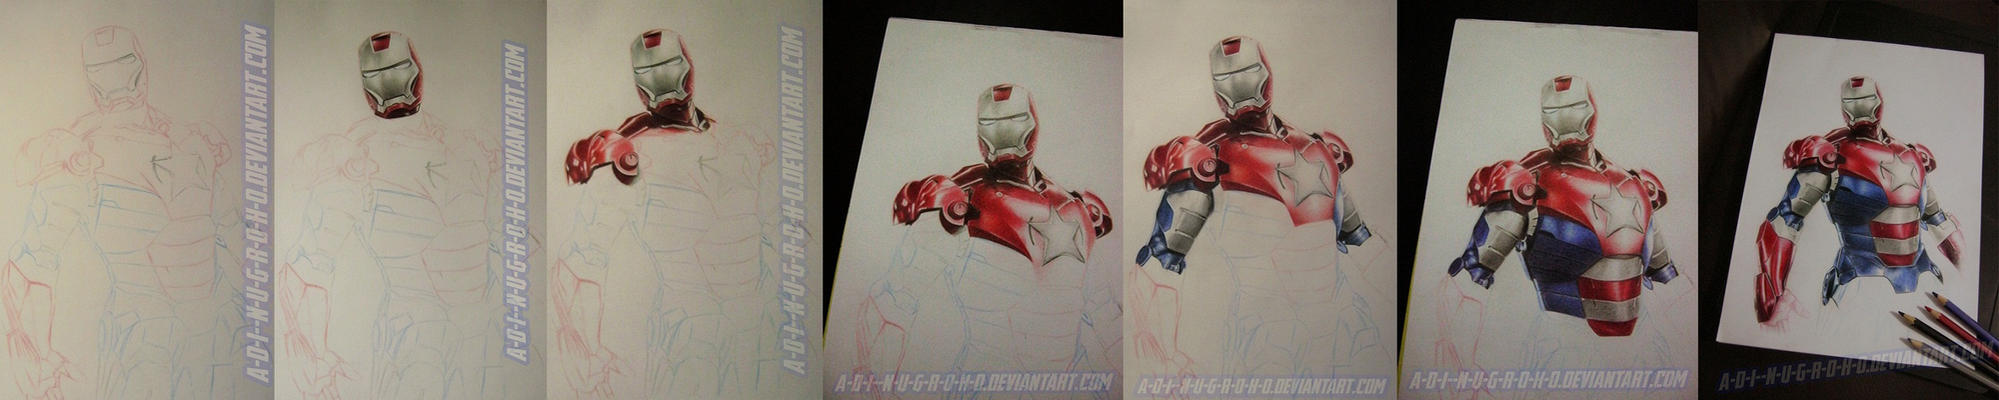 Iron America Work In Progress by A-D-I--N-U-G-R-O-H-O